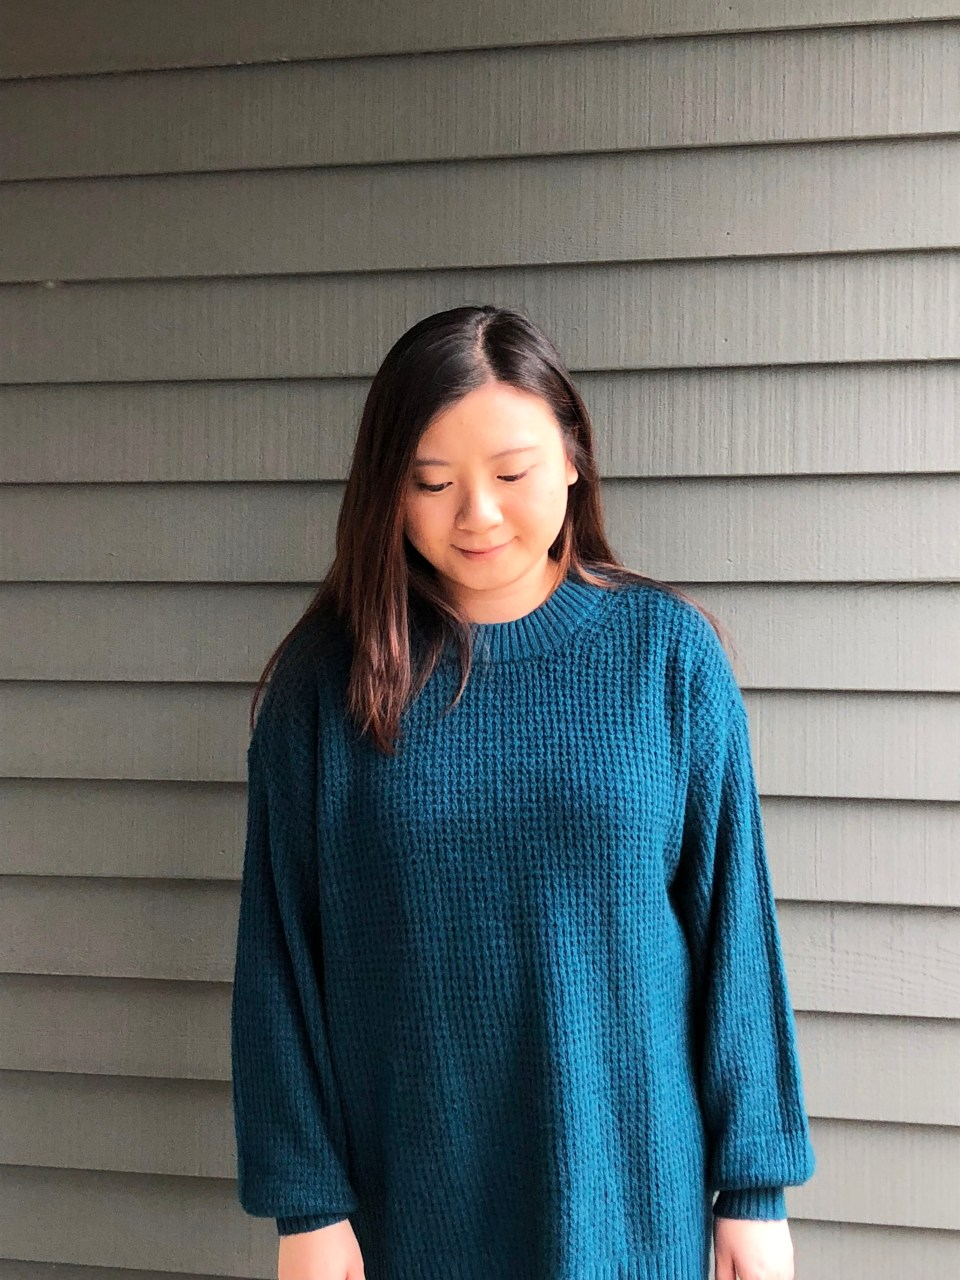 Teal Cloudspun Sweater 7